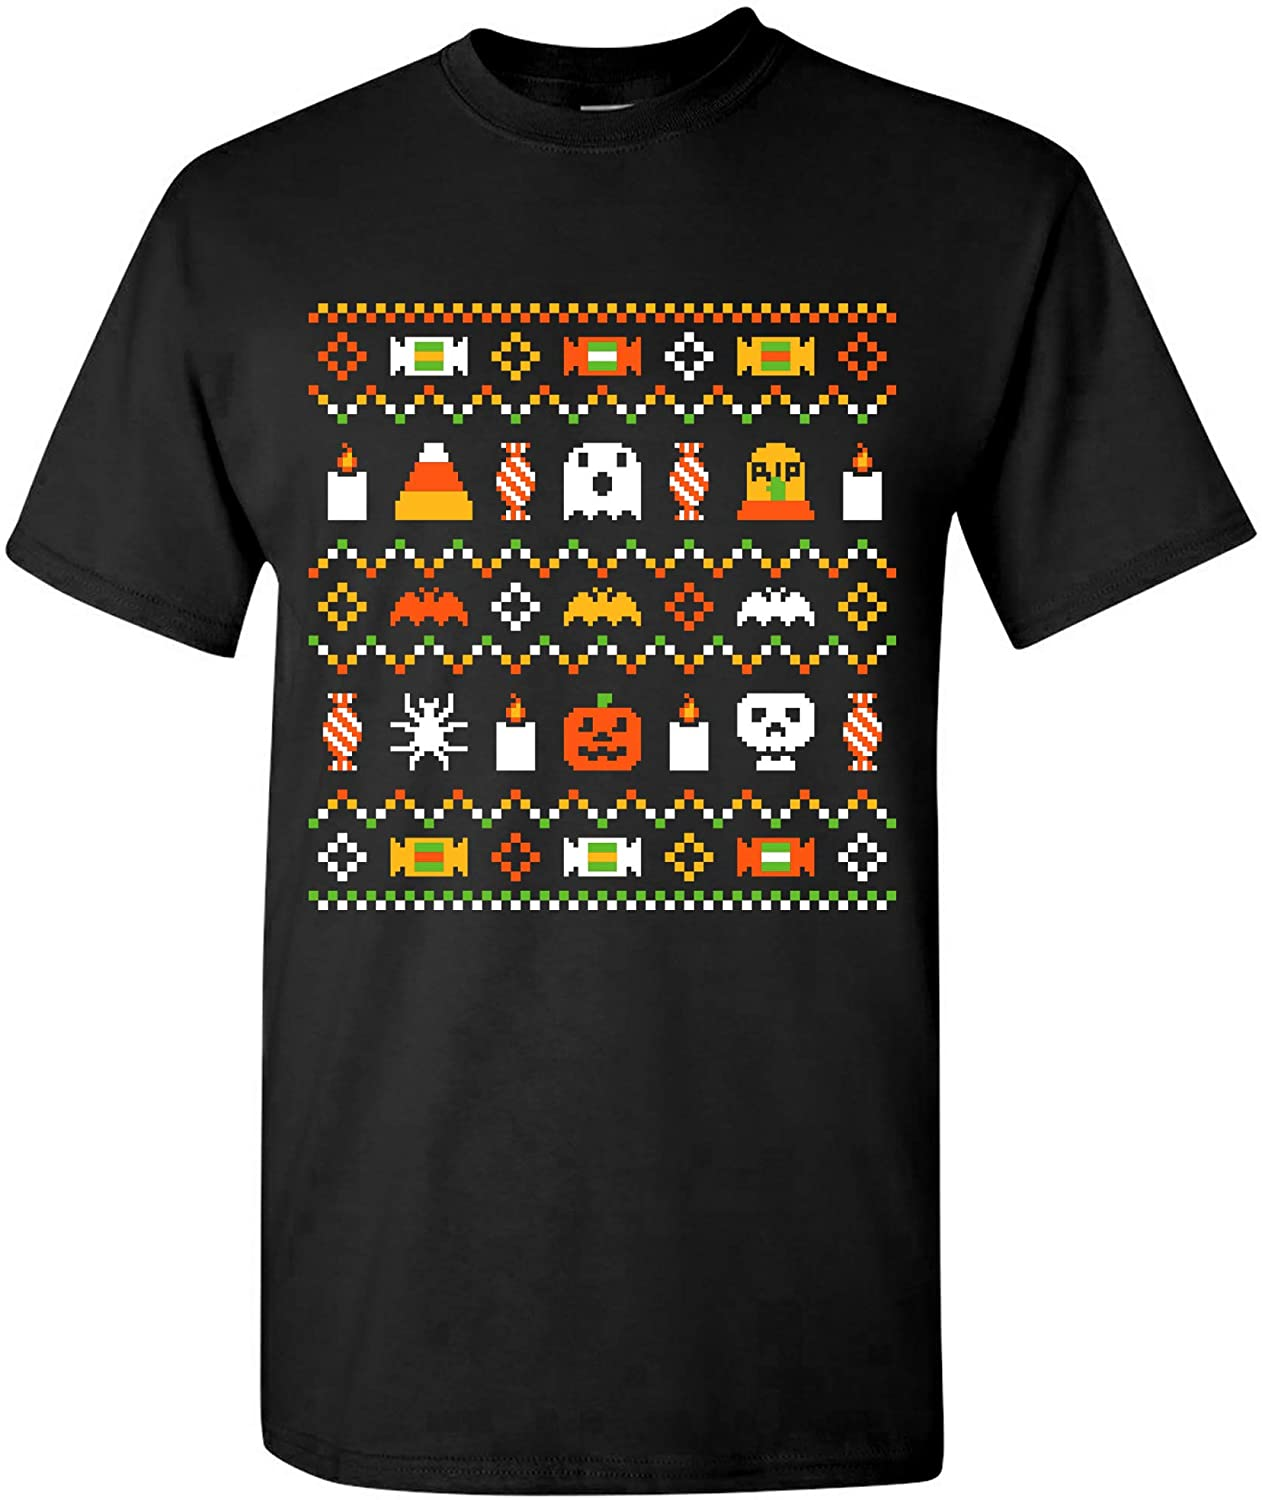 UGP Campus Apparel Halloween Ugly Sweater - Funny Spooky Ghost Halloween Costume T Shirt